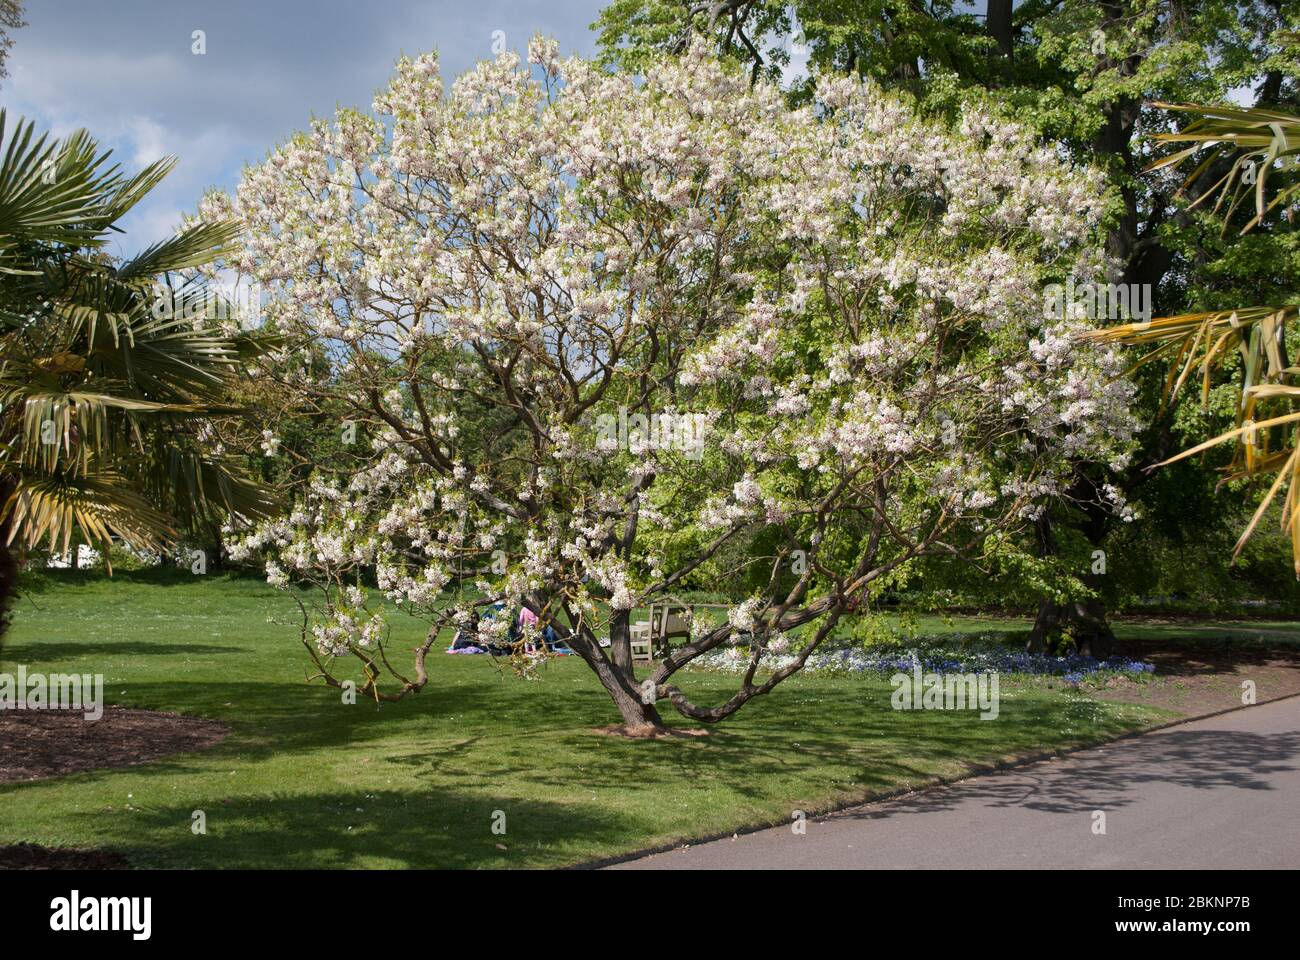 Magnolia Tree Bloom Blooming Flower Flowers at Royal Botanic Gardens Kew Gardens, Richmond, London Stock Photo